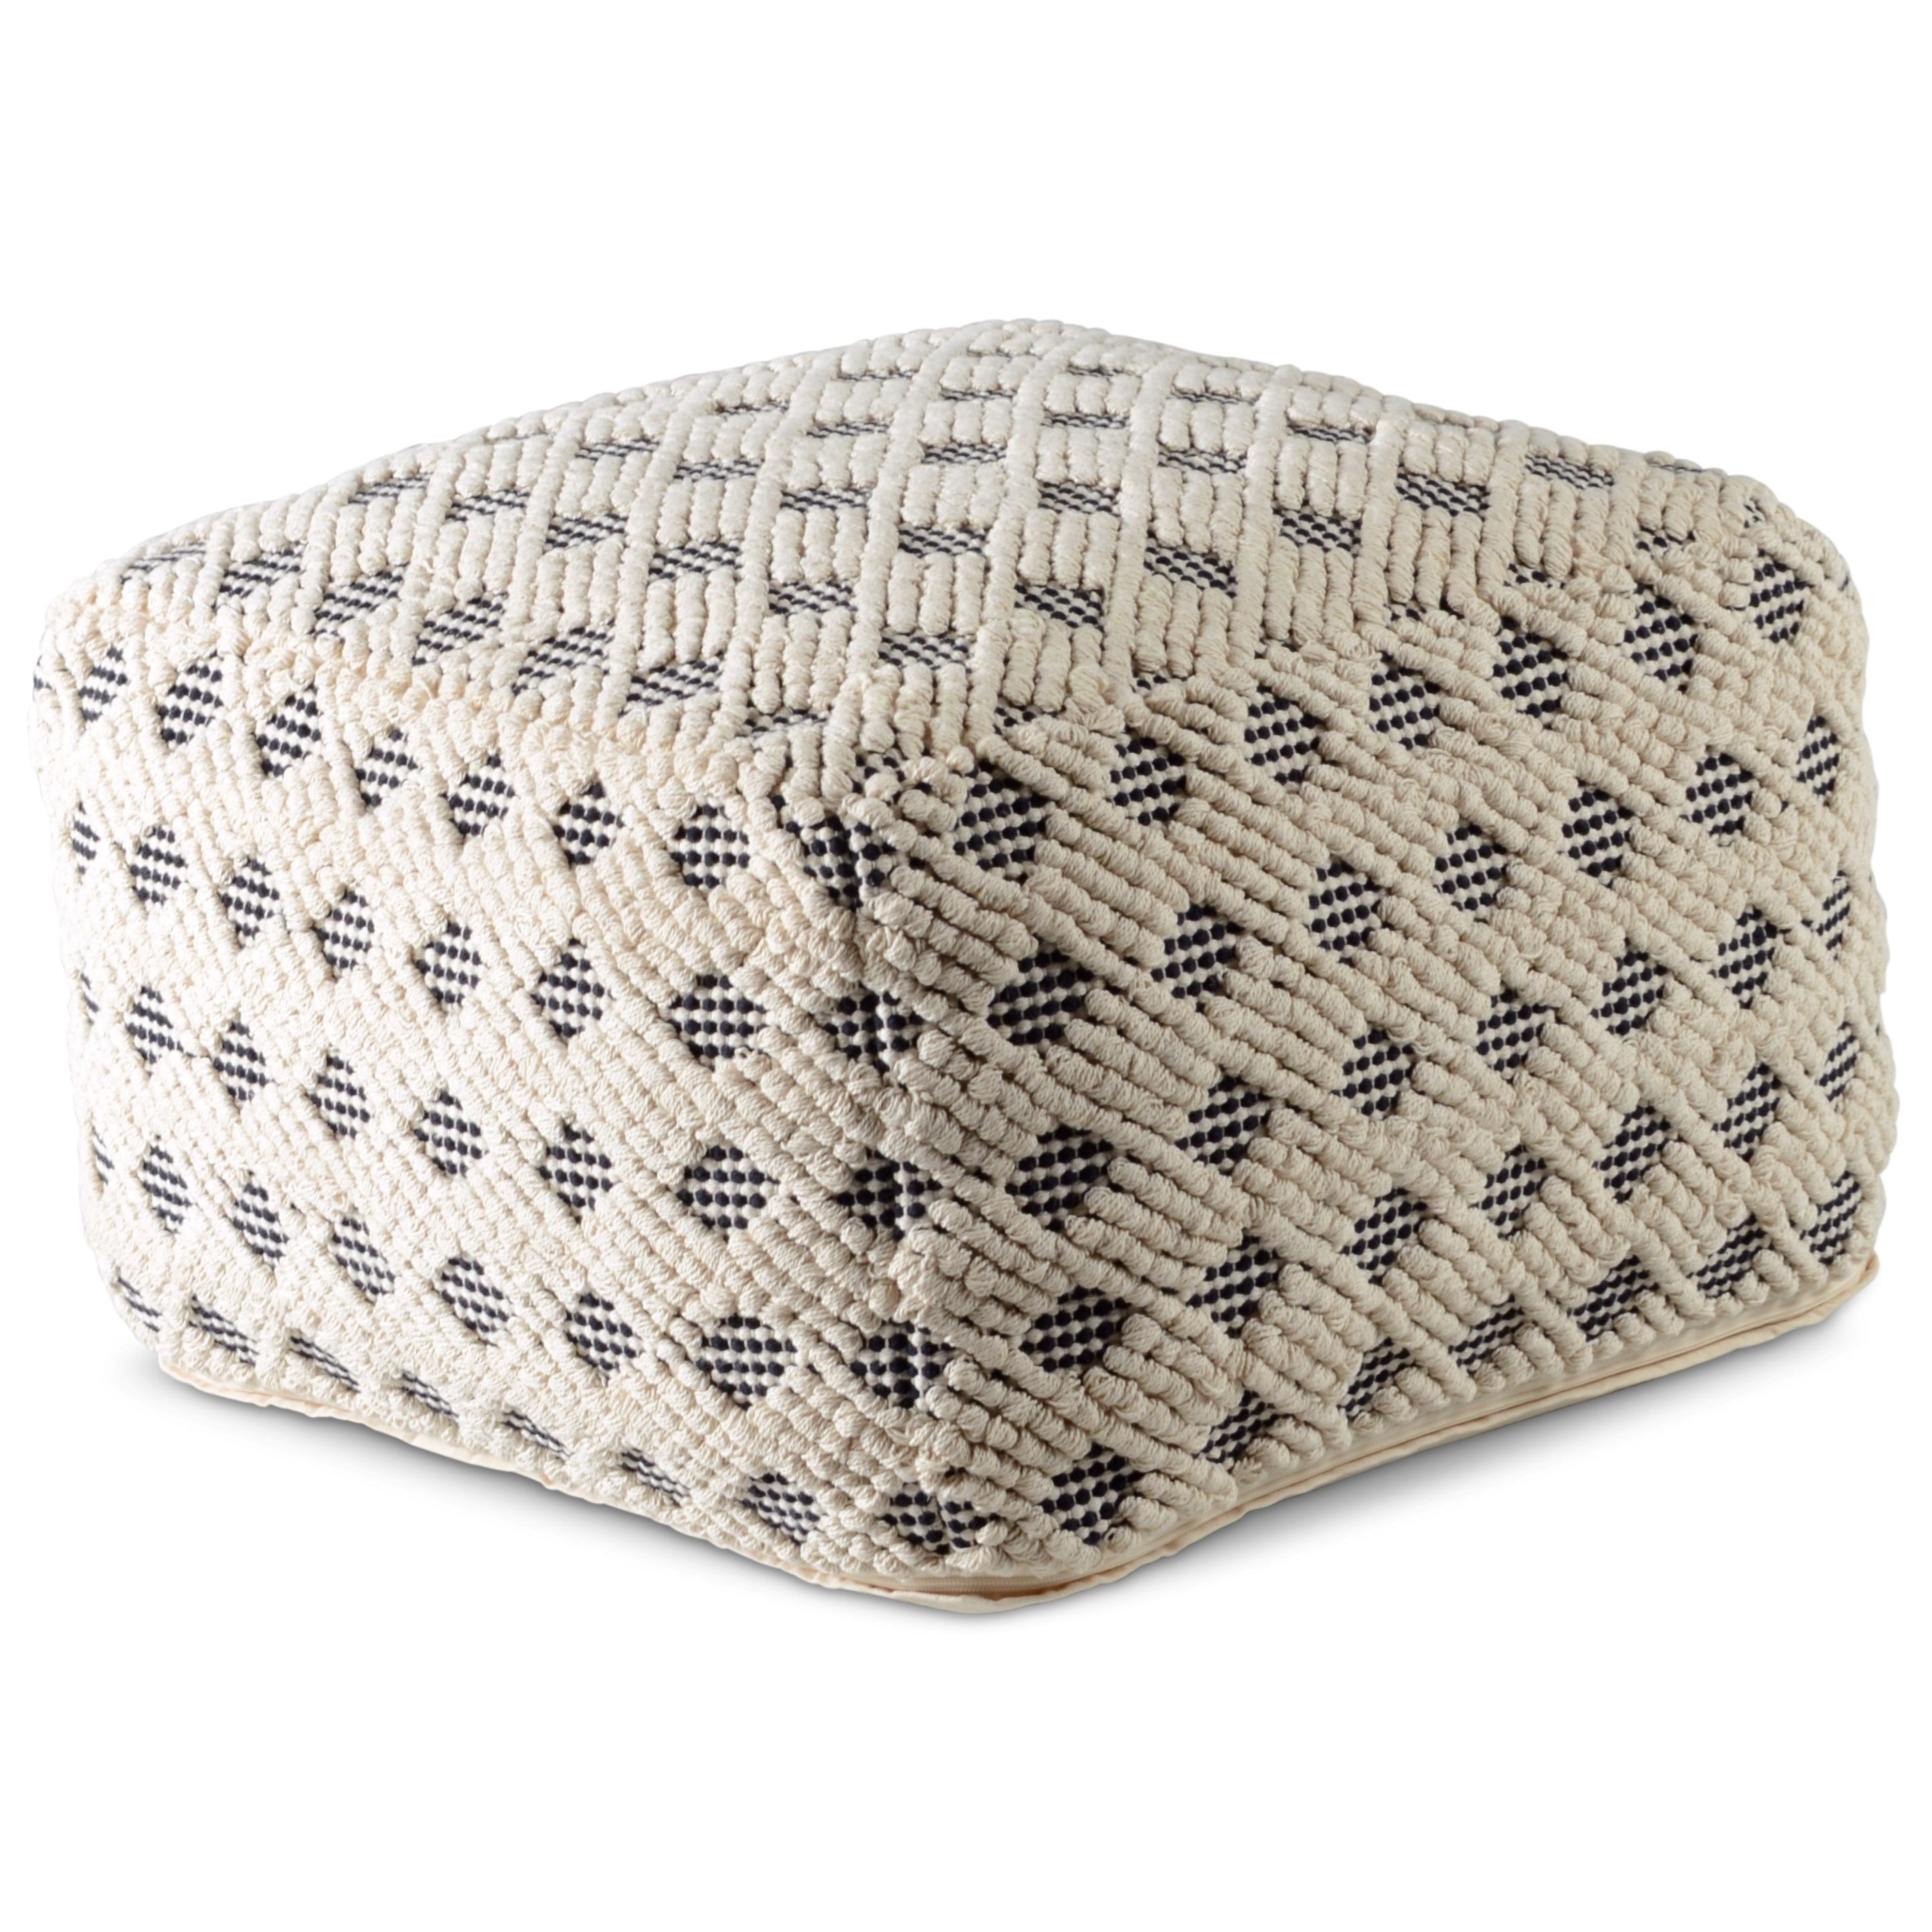 Kodi Square Pouf by Steve Silver at Northeast Factory Direct